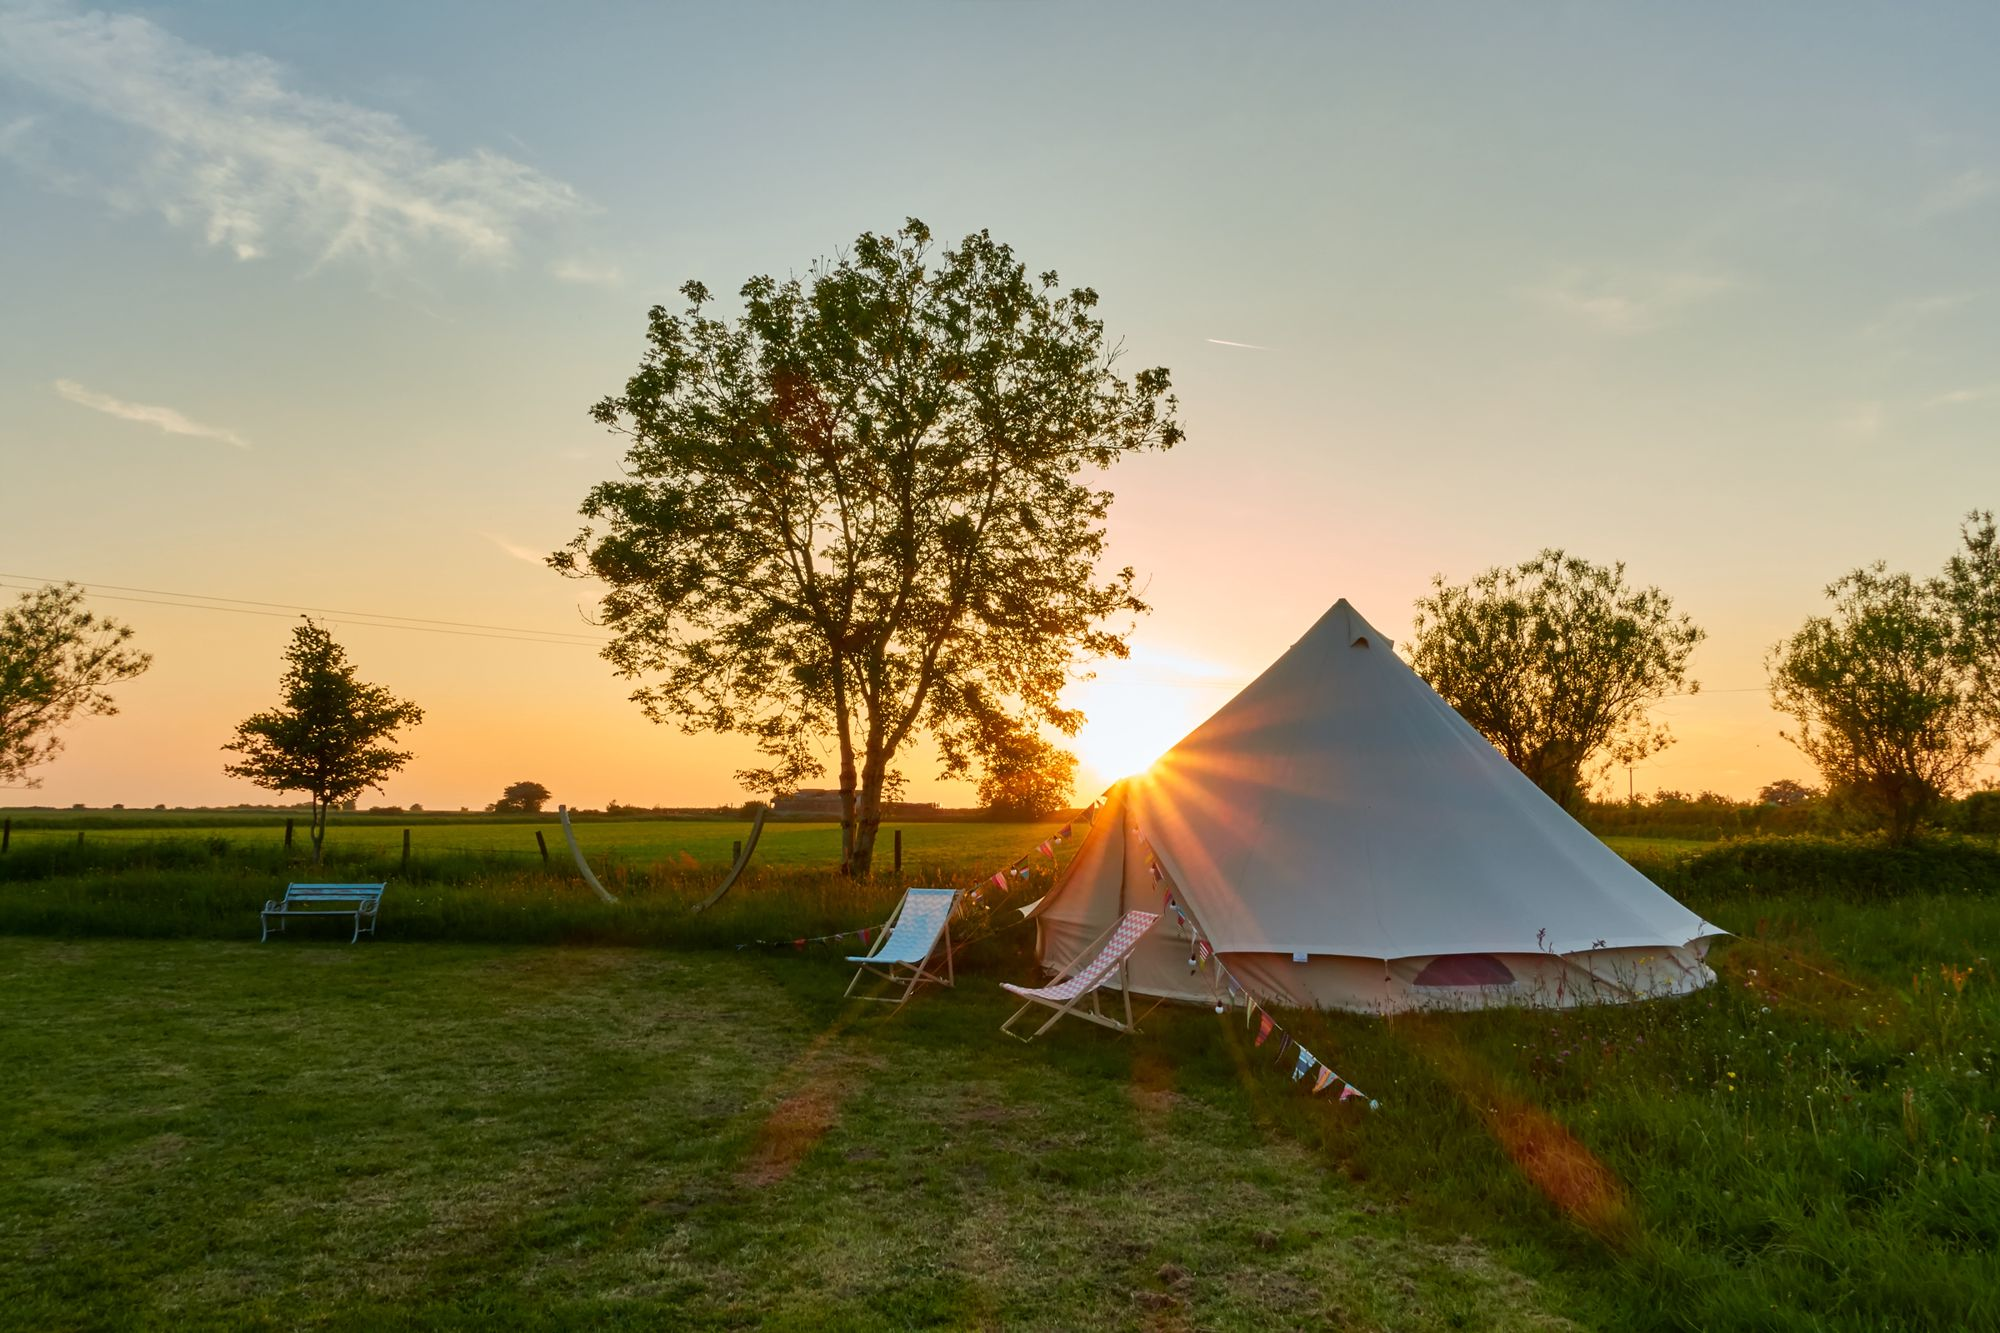 Luxury bell tent glamping in Somerset's Mendip Hills that's perfect for romantic breaks or peaceful family getaways.